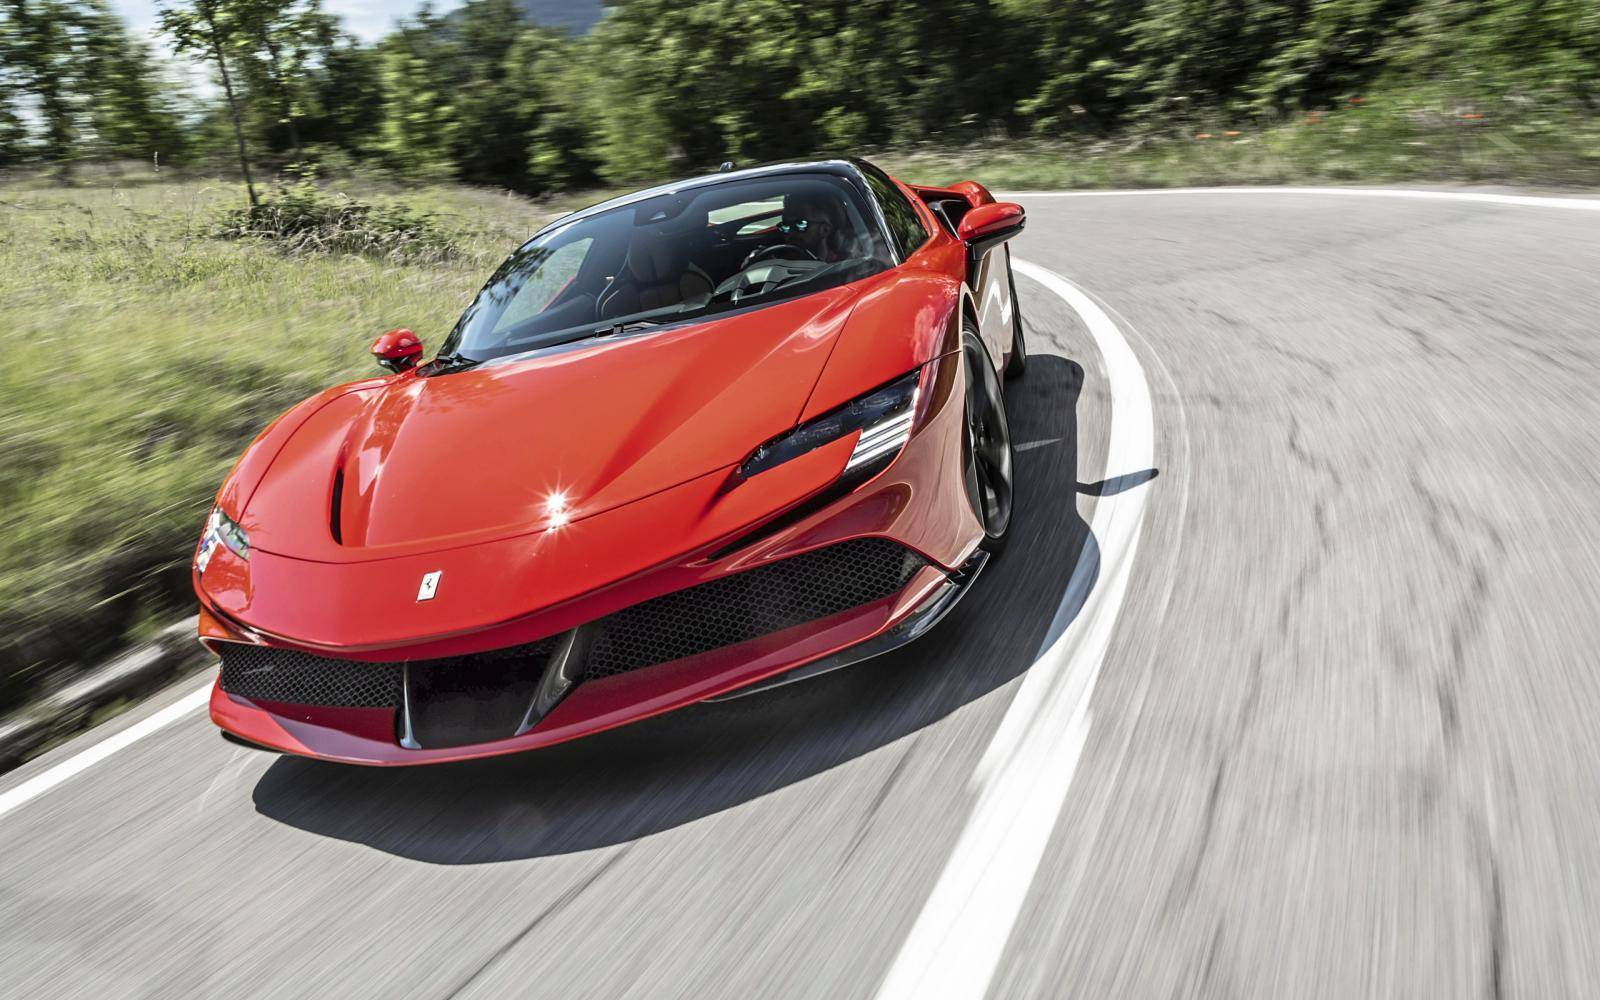 Top and flop: the good and bad car news of week 36